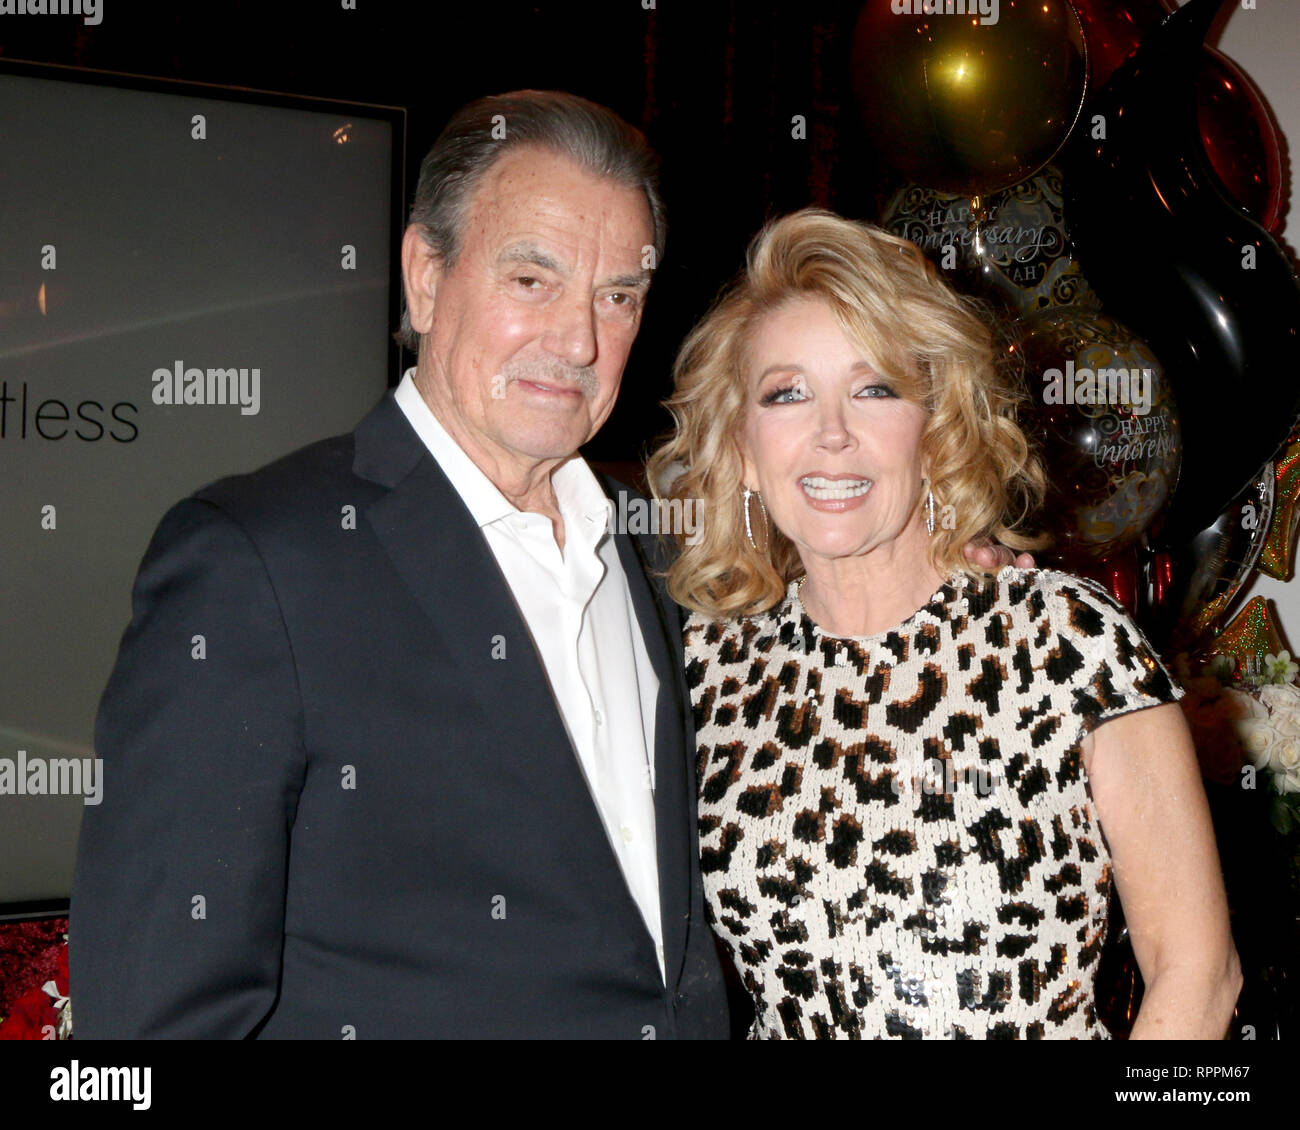 Page 3 Eric Braeden High Resolution Stock Photography And Images Alamy As of 2019, dale russell gudegast is currently 77 years old. https www alamy com los angeles ca usa 20th feb 2019 los angeles feb 20 eric braeden melody thomas scott at the melody thomas scott celebrates 40 years on yr event at cbs television city on february 20 2019 in los angeles ca credit kay blakezuma wirealamy live news image237756015 html